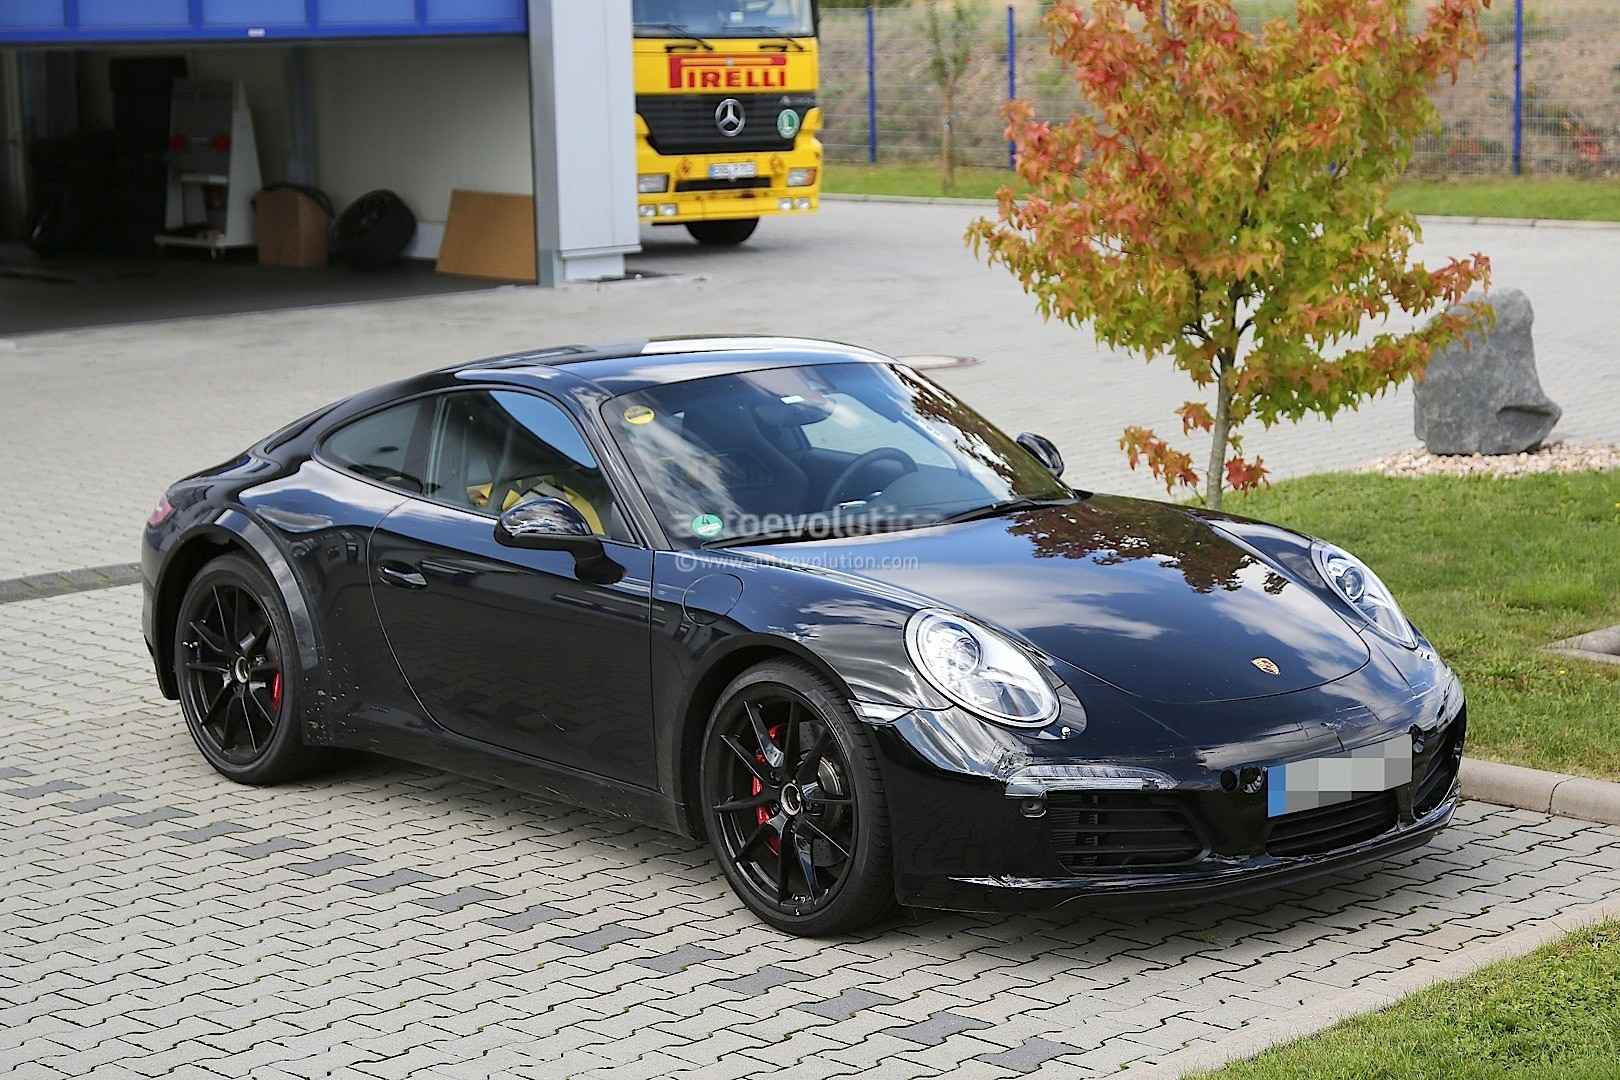 2019 Porsche 911 Turbo Cabriolet photo - 6